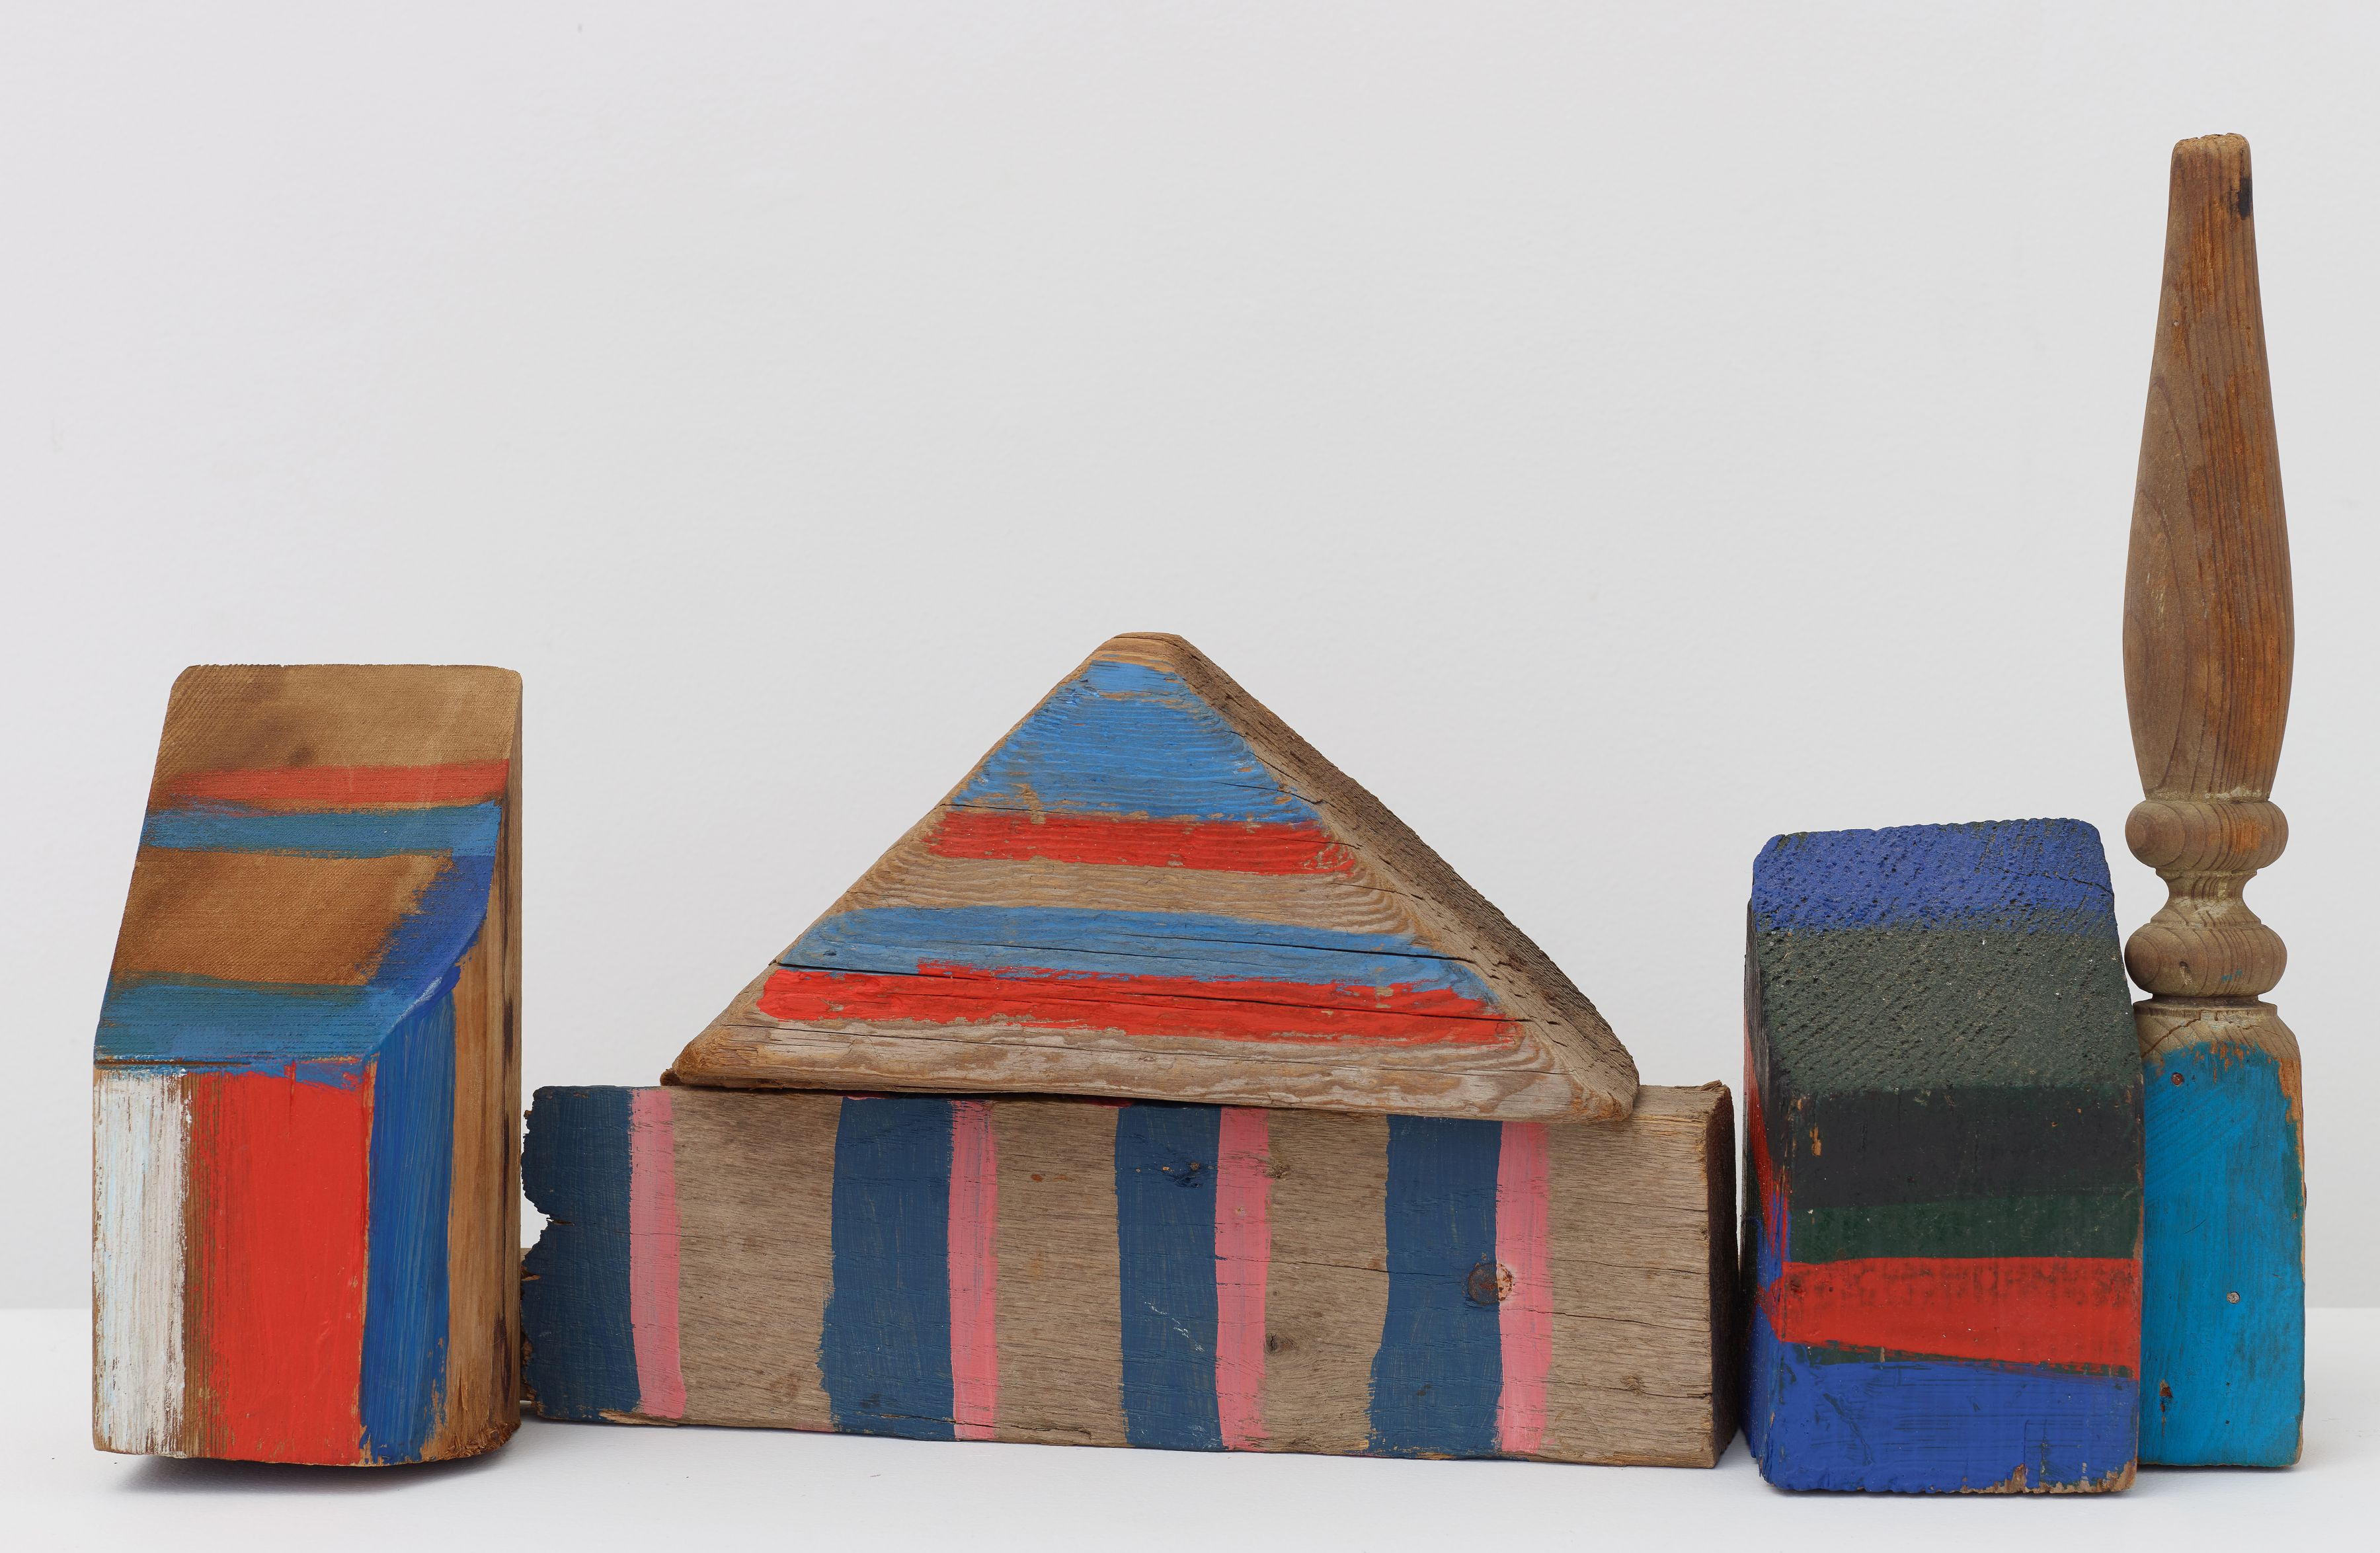 African Village, 1981, Wood, paint, and hardware